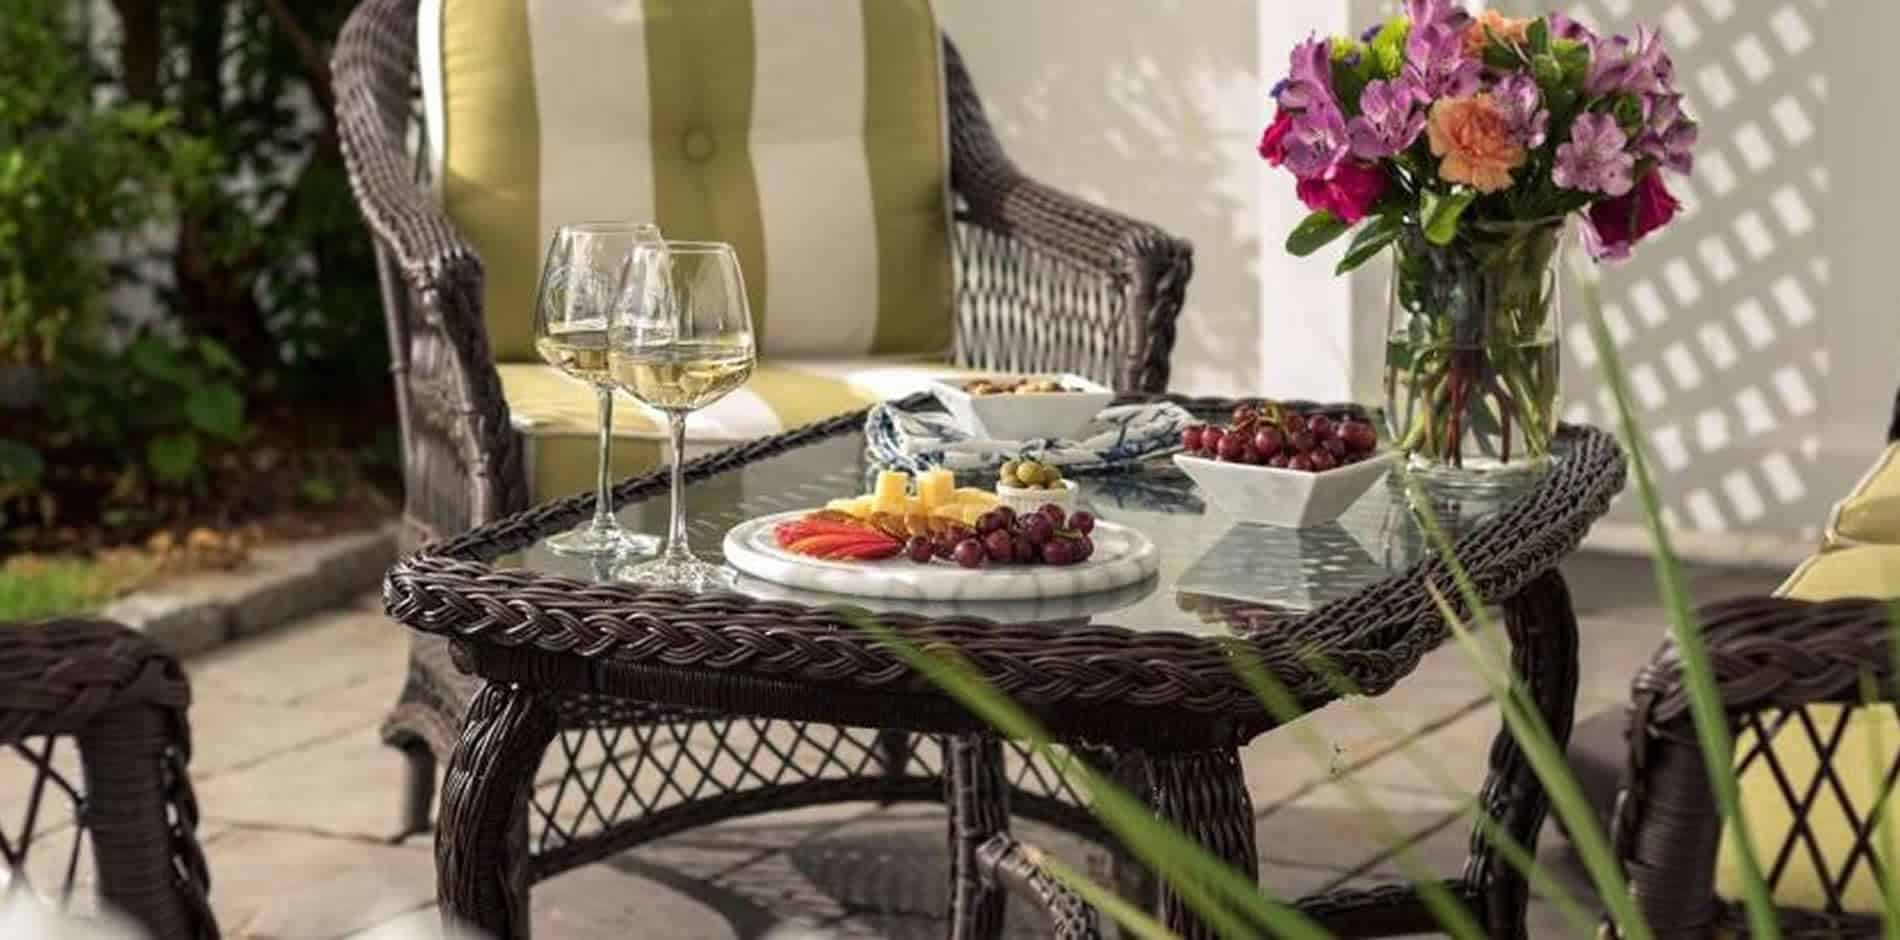 Wicker patio furniture, plates of grapes and cheese, white wine glasses and fresh flowers